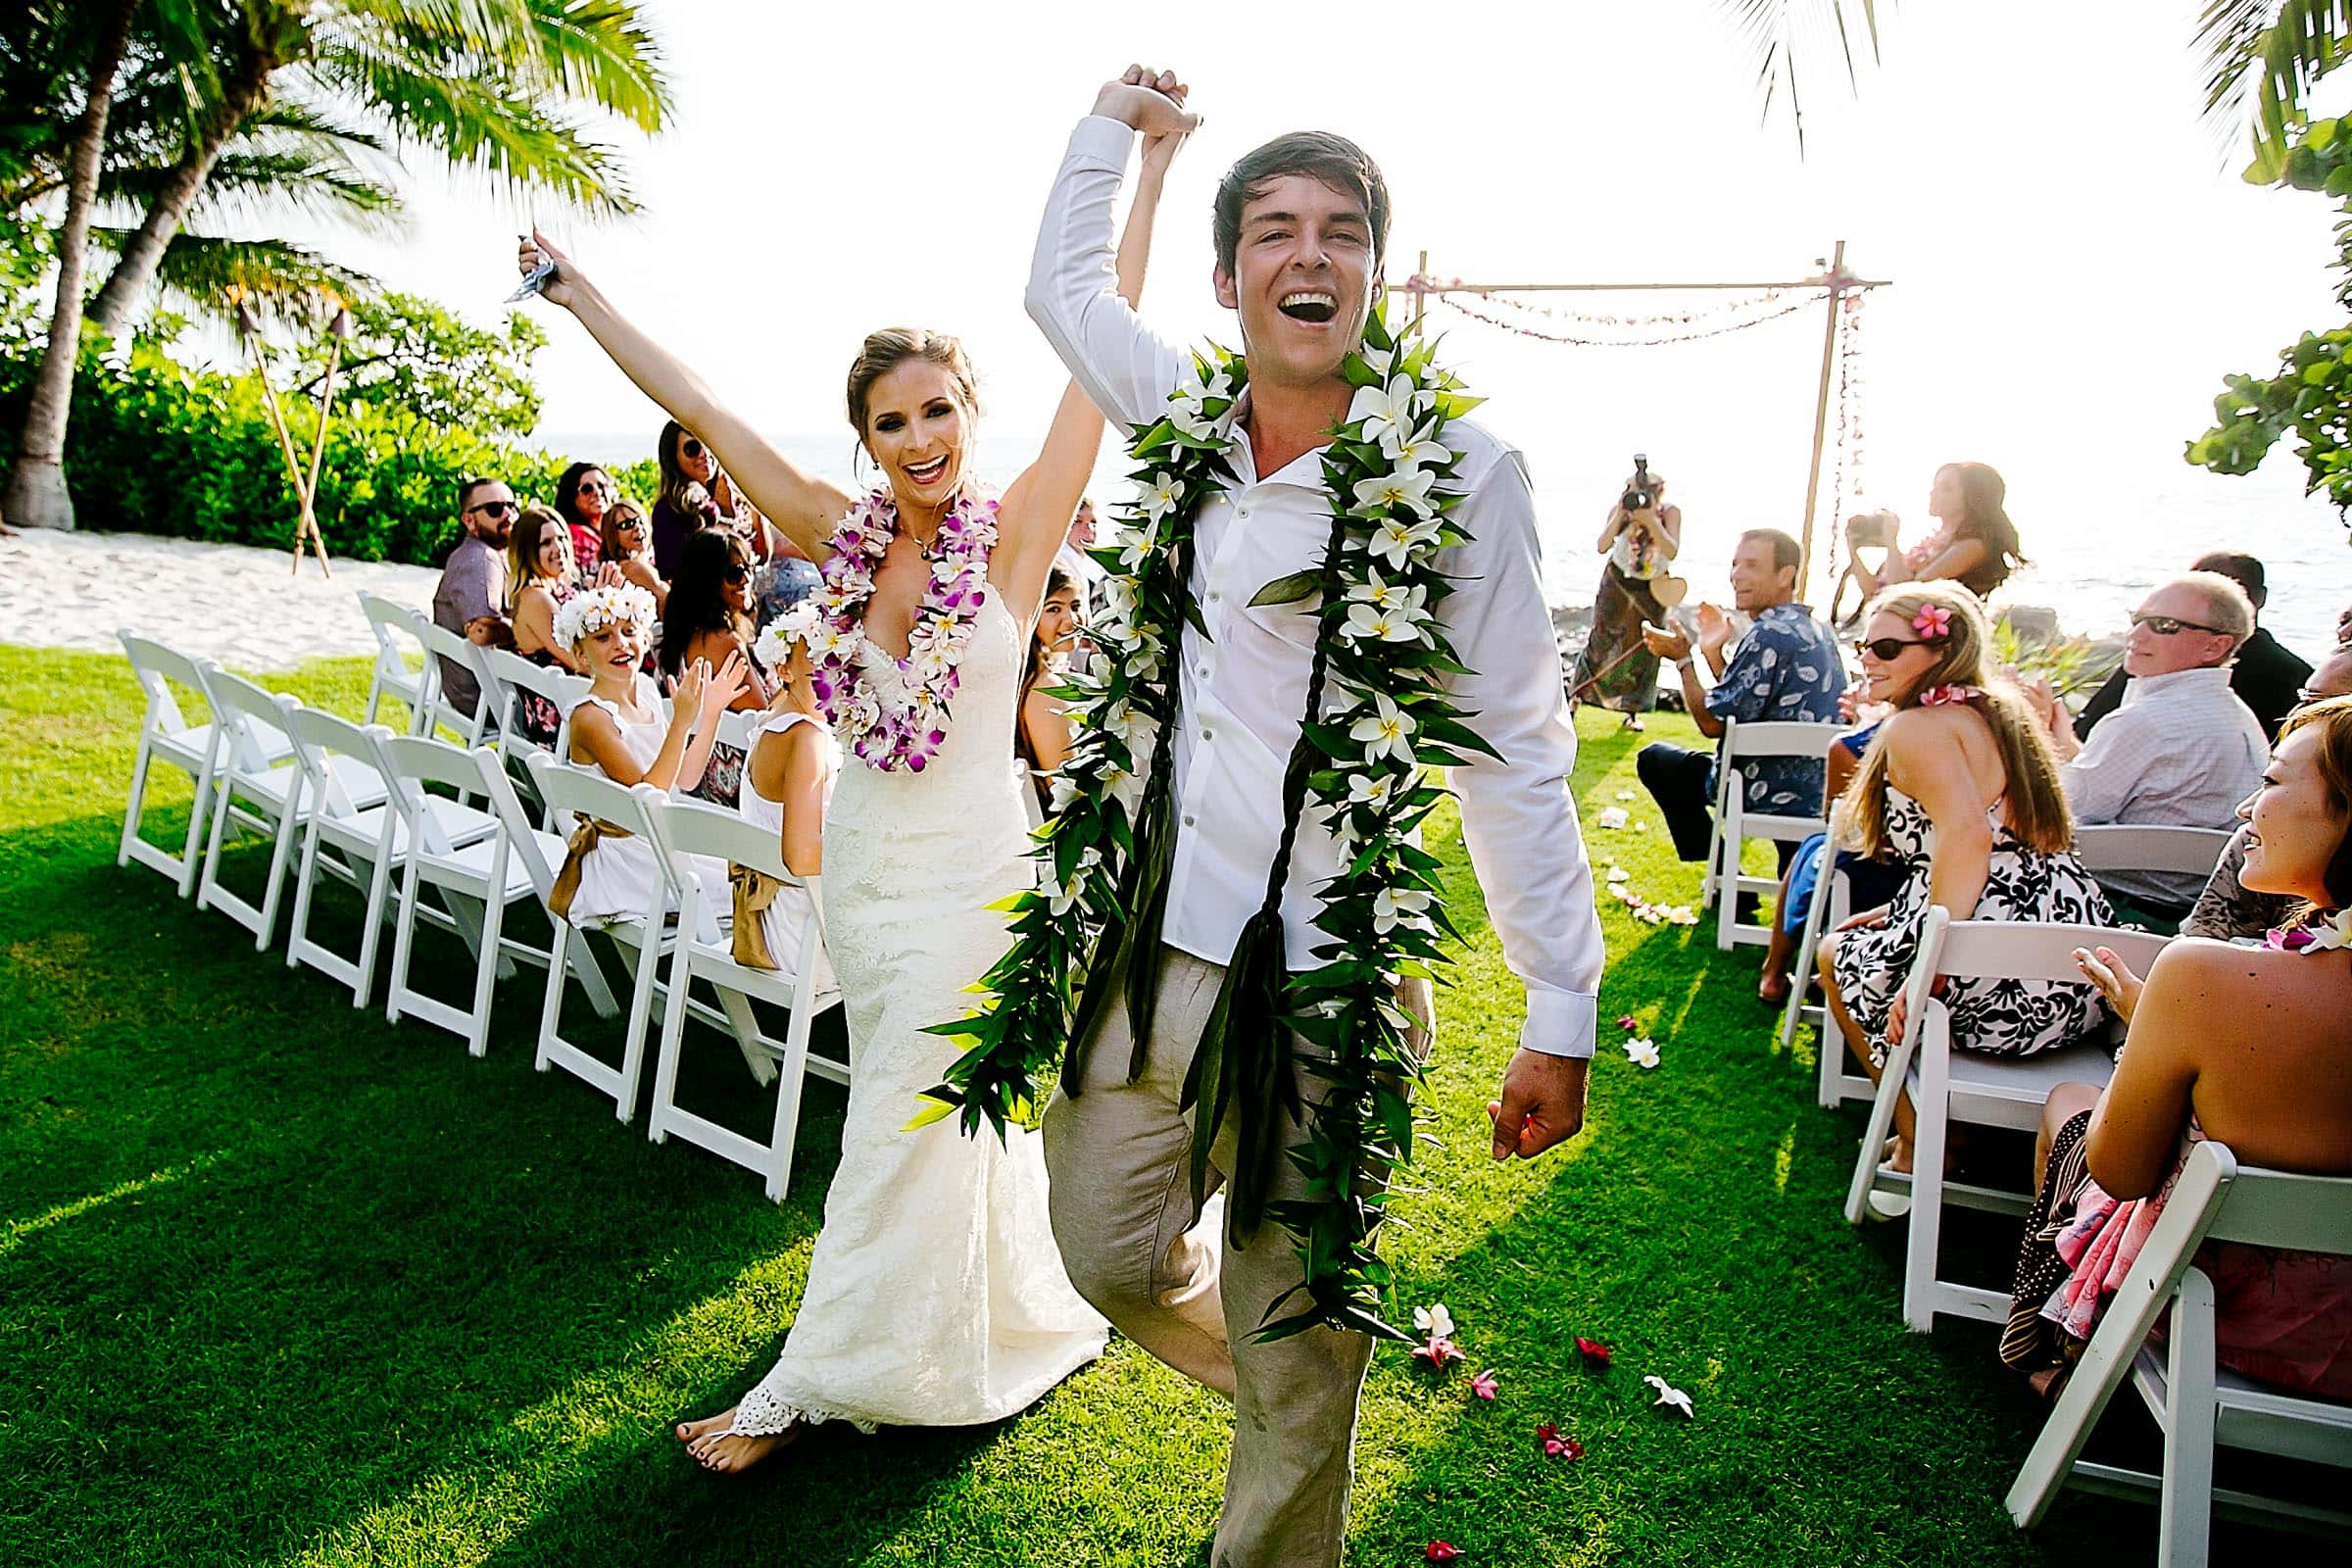 Bride and groom celebrating their exit during a Kailua Kona Wedding ceremony at the Kona Beach Bungalows on the Big Island of Hawaii